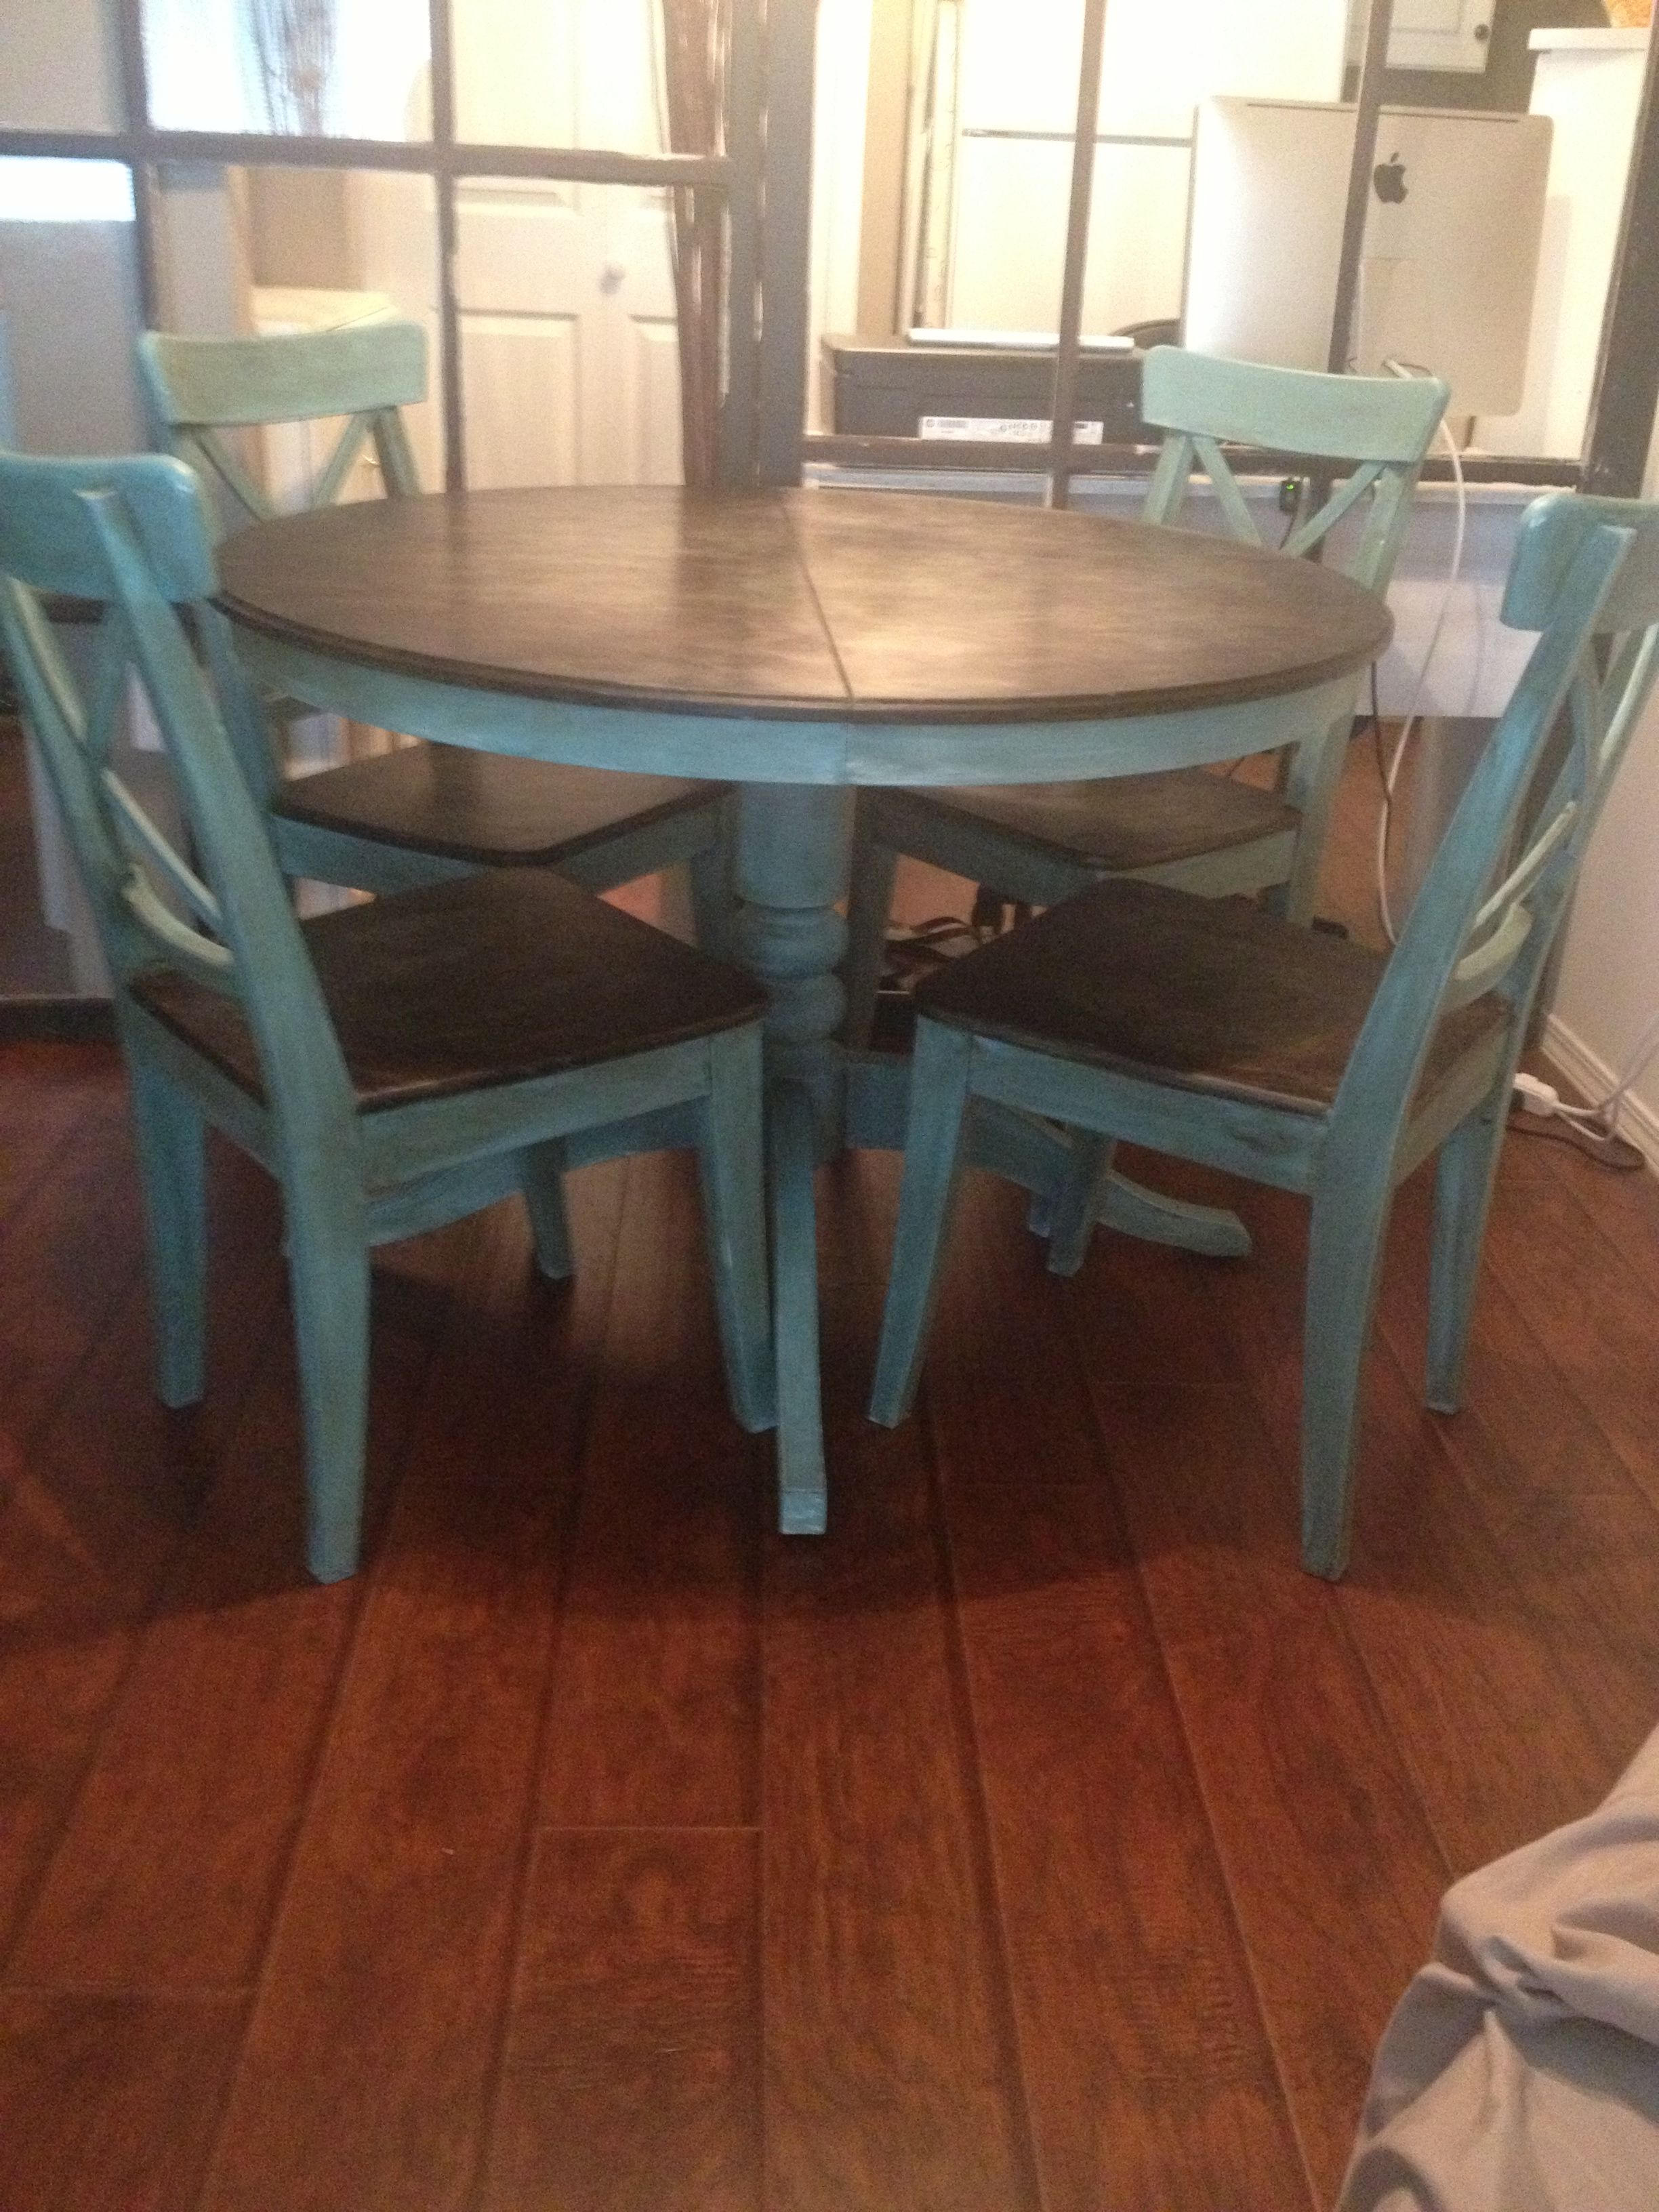 Pin By Sherrie York On Mine Painted Dining Table Diy Kitchen Table Painted Kitchen Tables